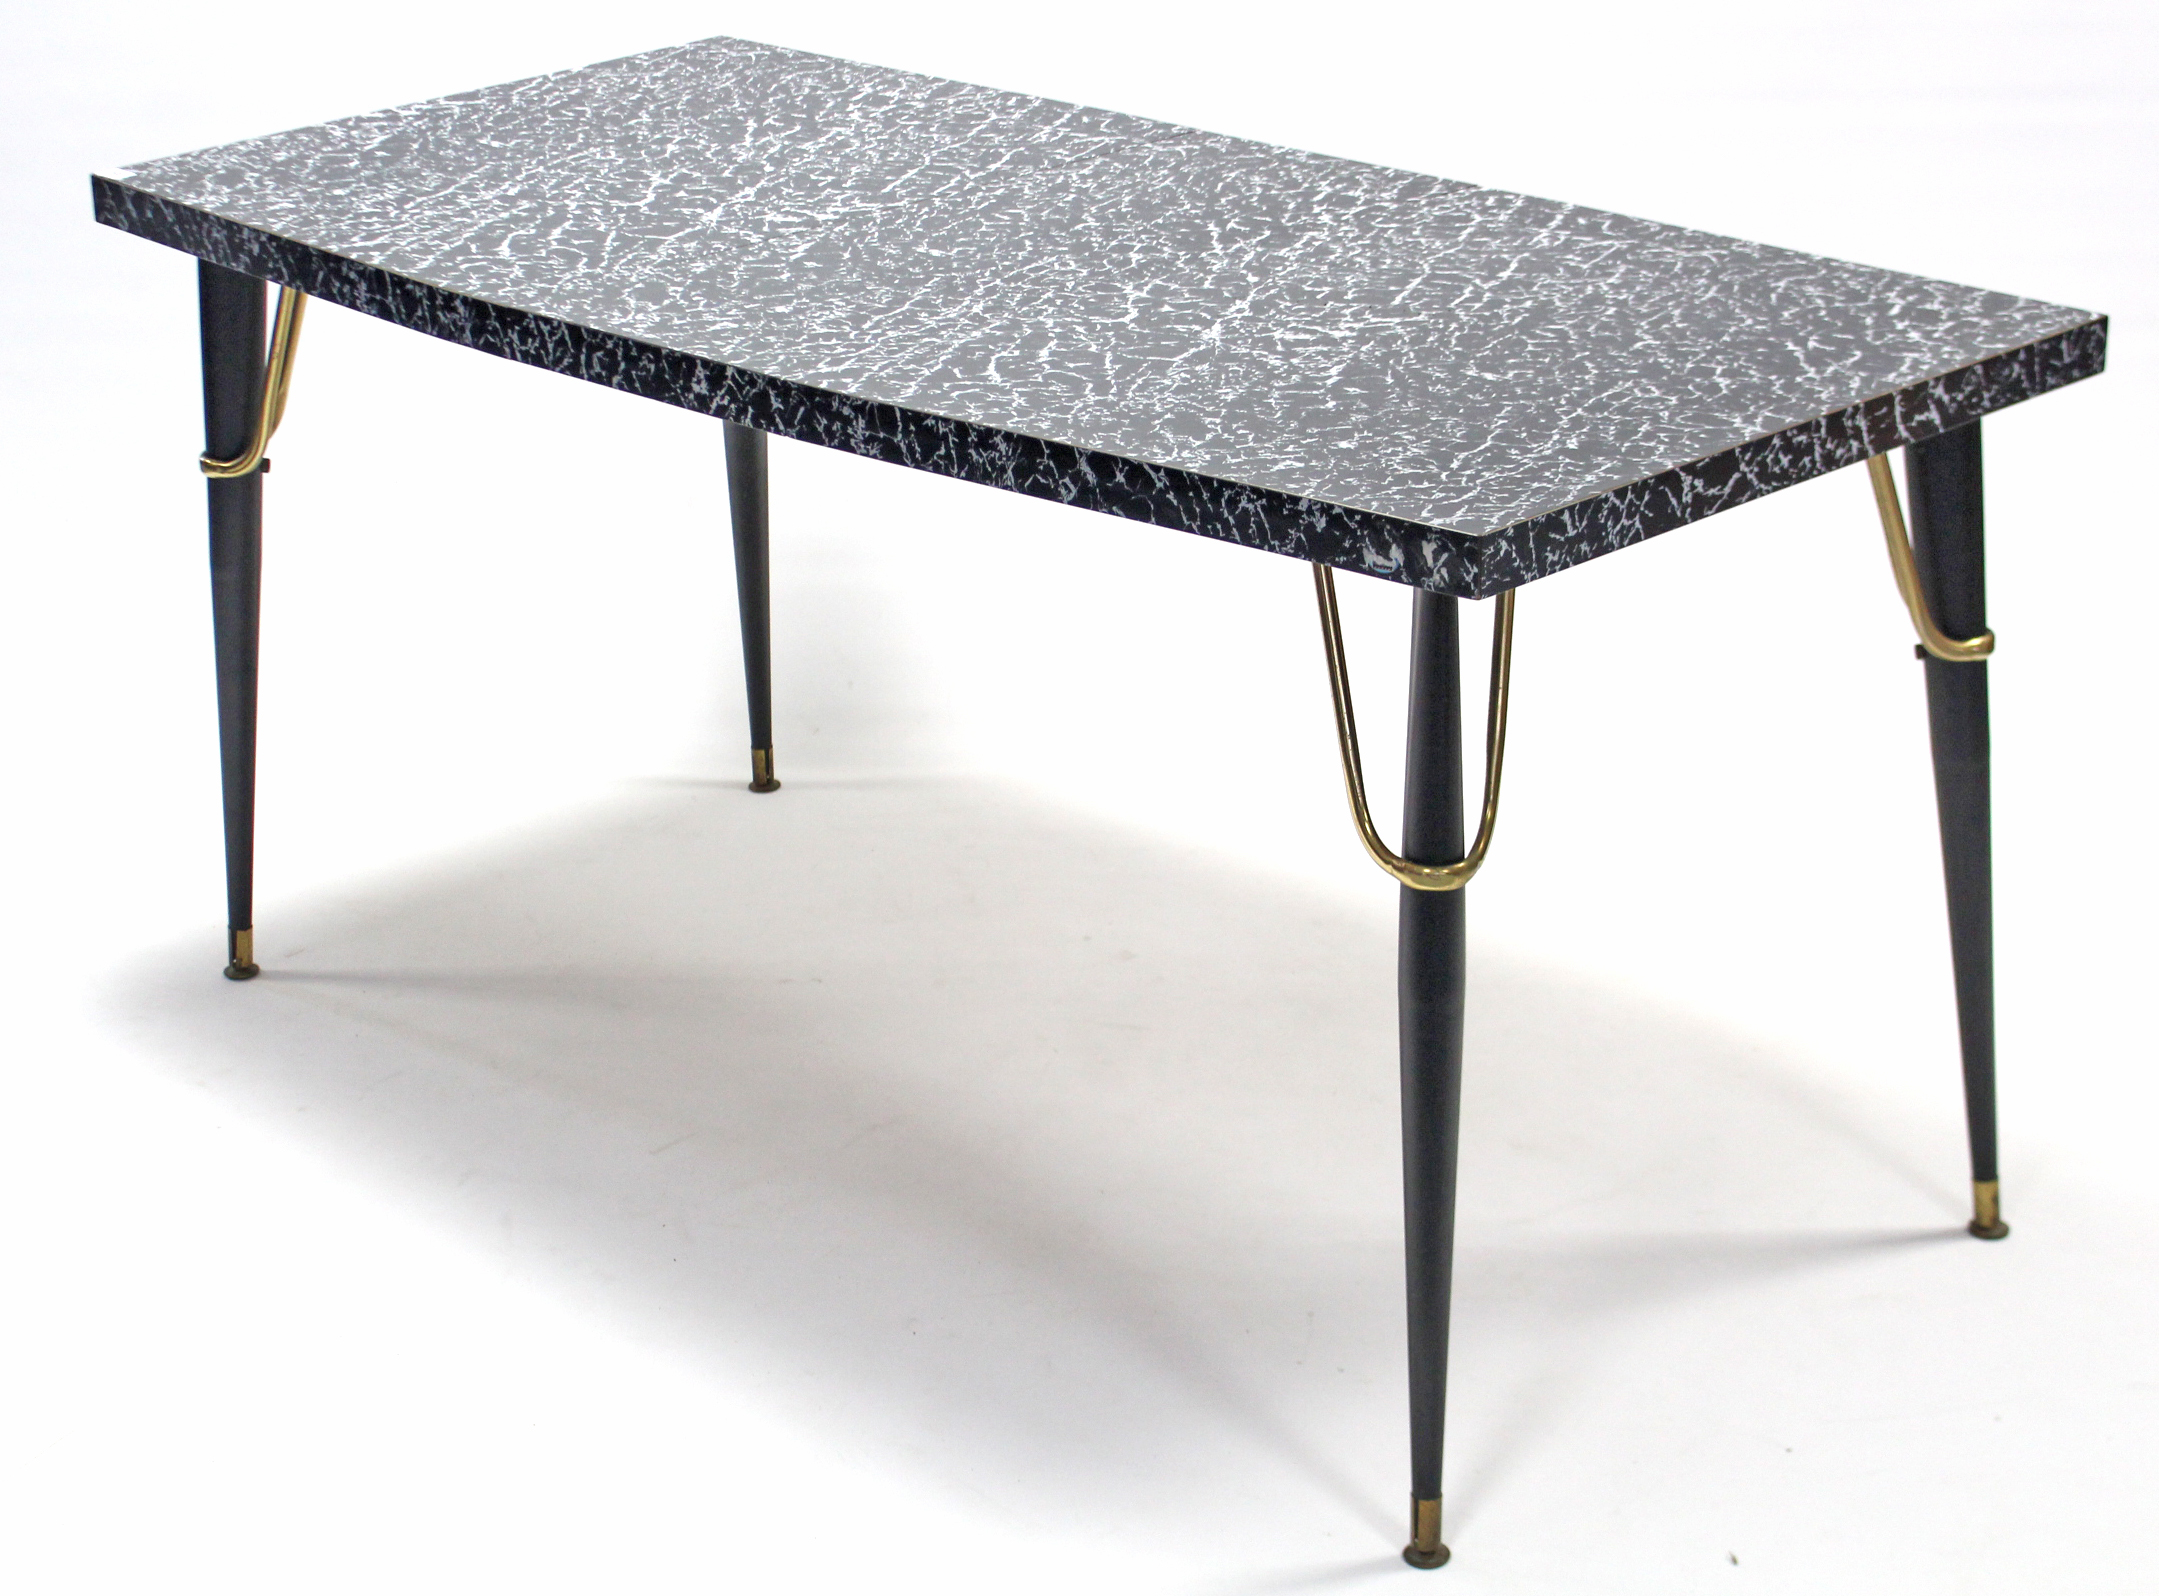 Lot 151 - A rectangular extending kitchen table with black marble effect Formica top, pull-out action & a